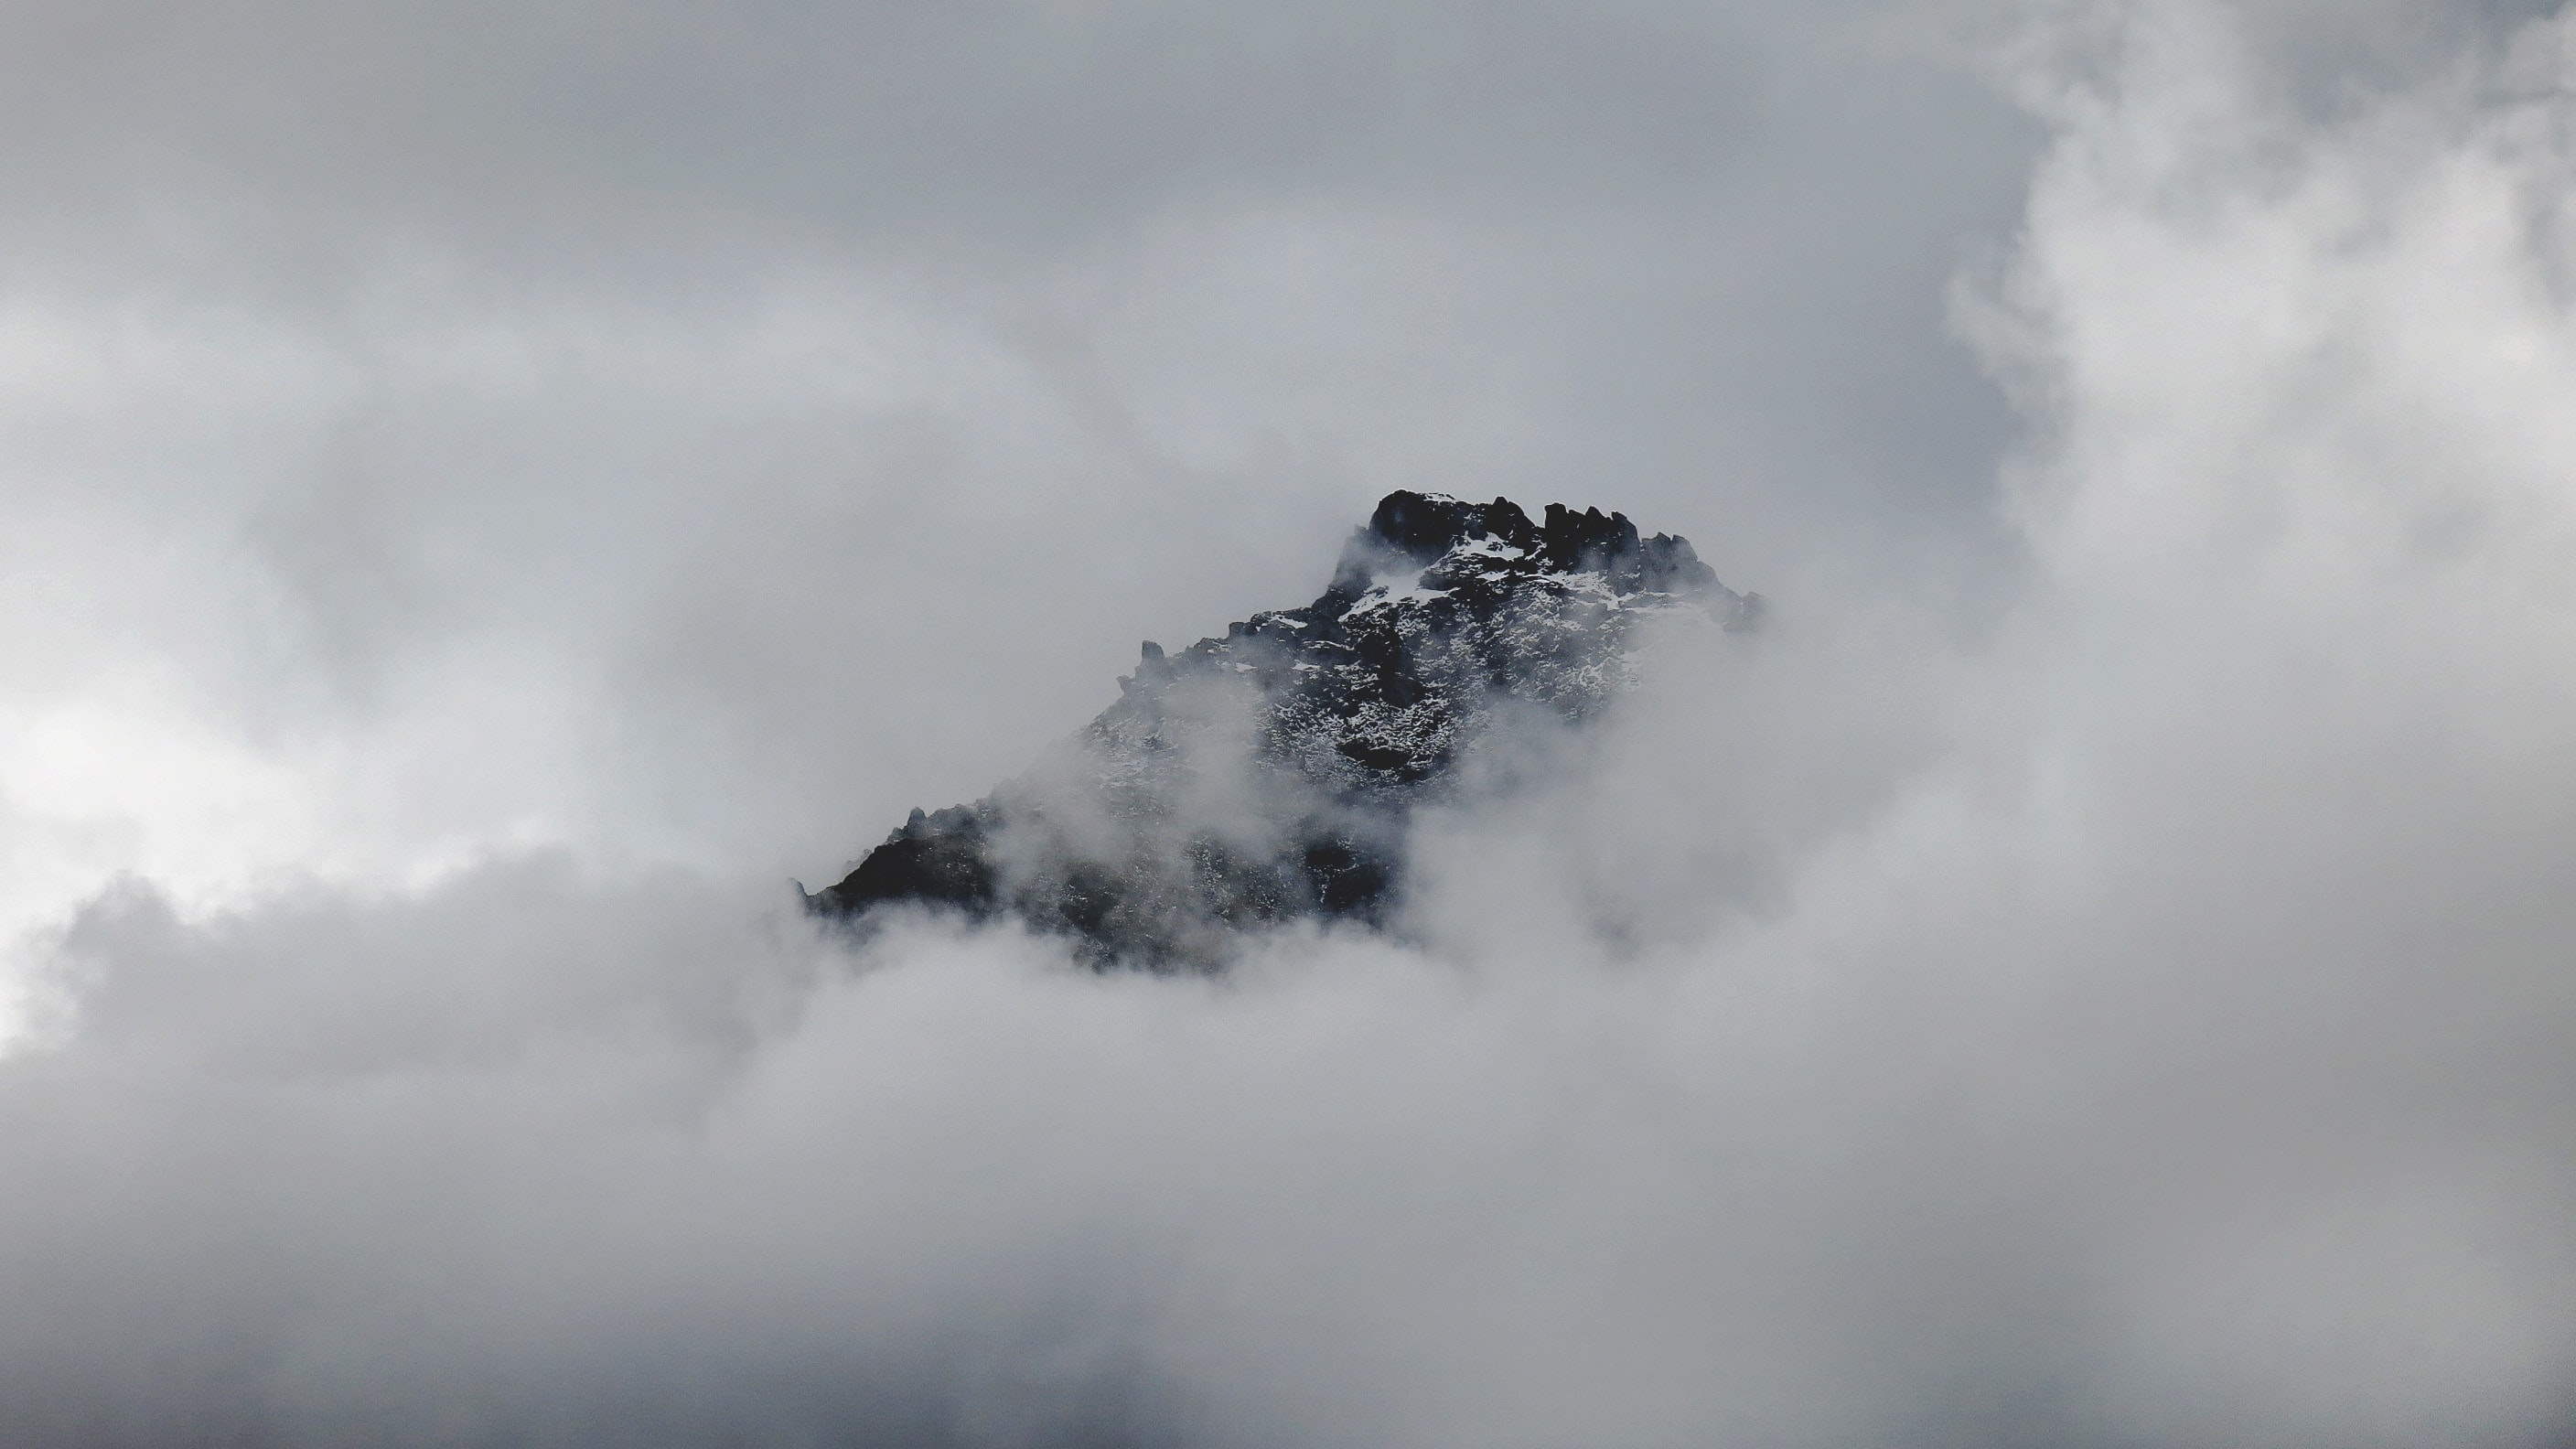 Snowy mountain summer peeks through clouds in Franz Josef Glacier